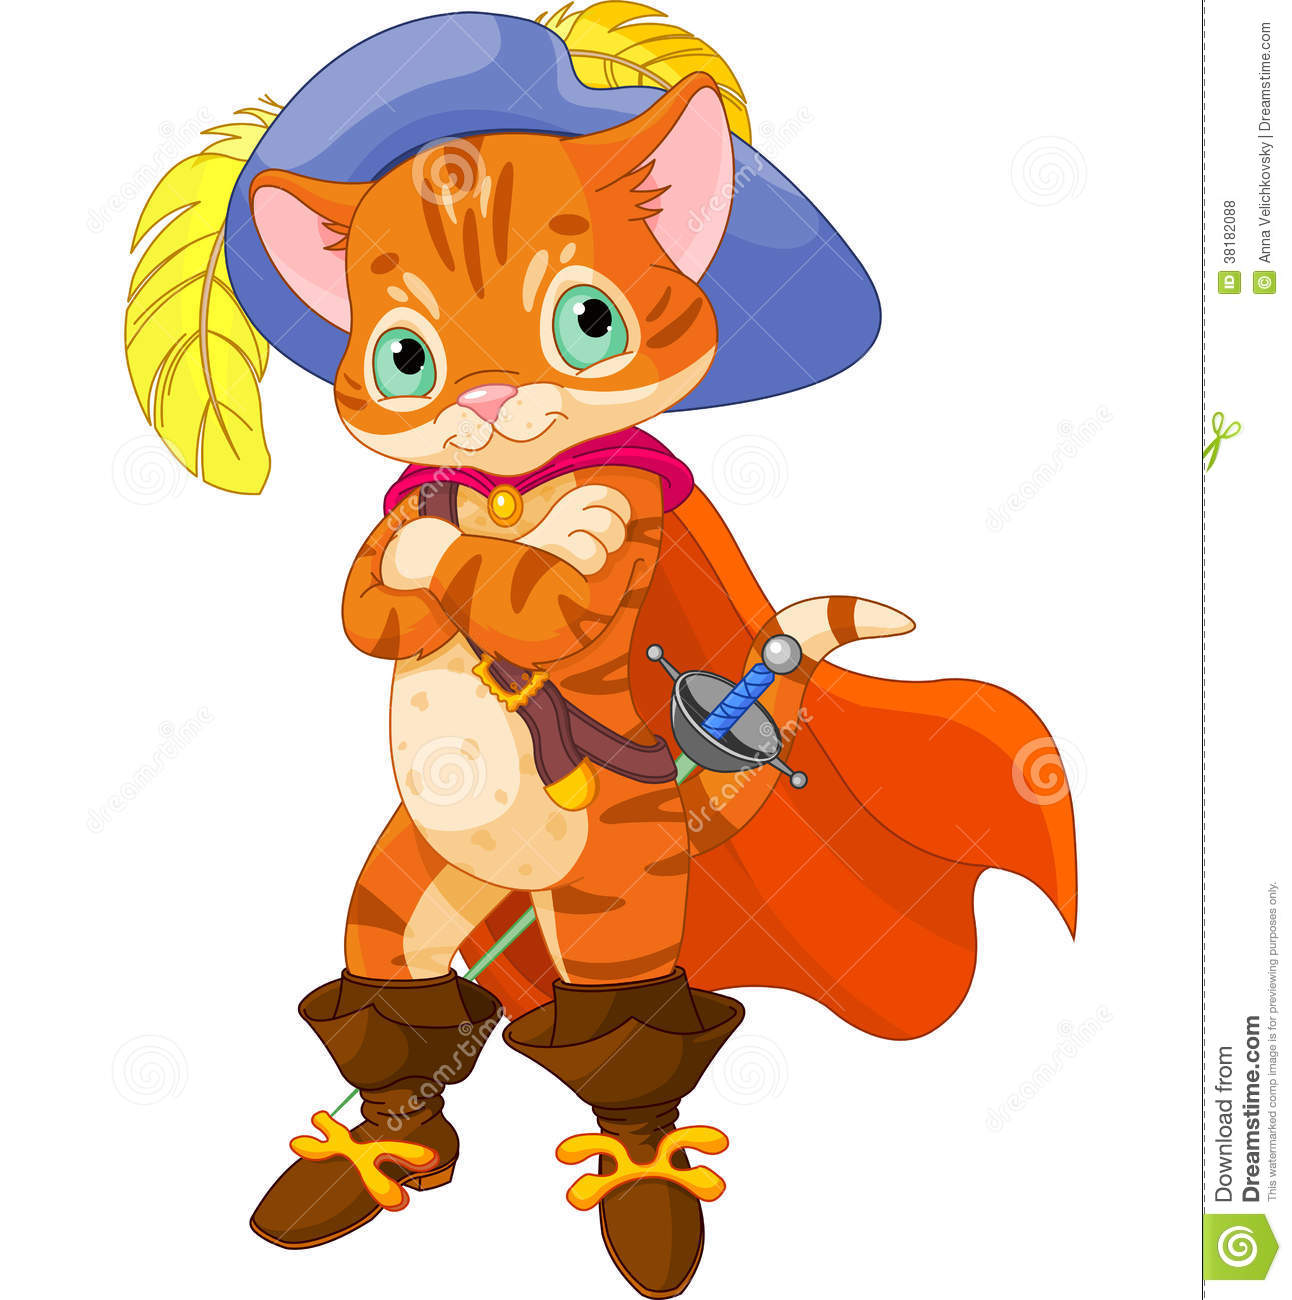 Puss in boots royalty. Der gestiefelte kater clipart